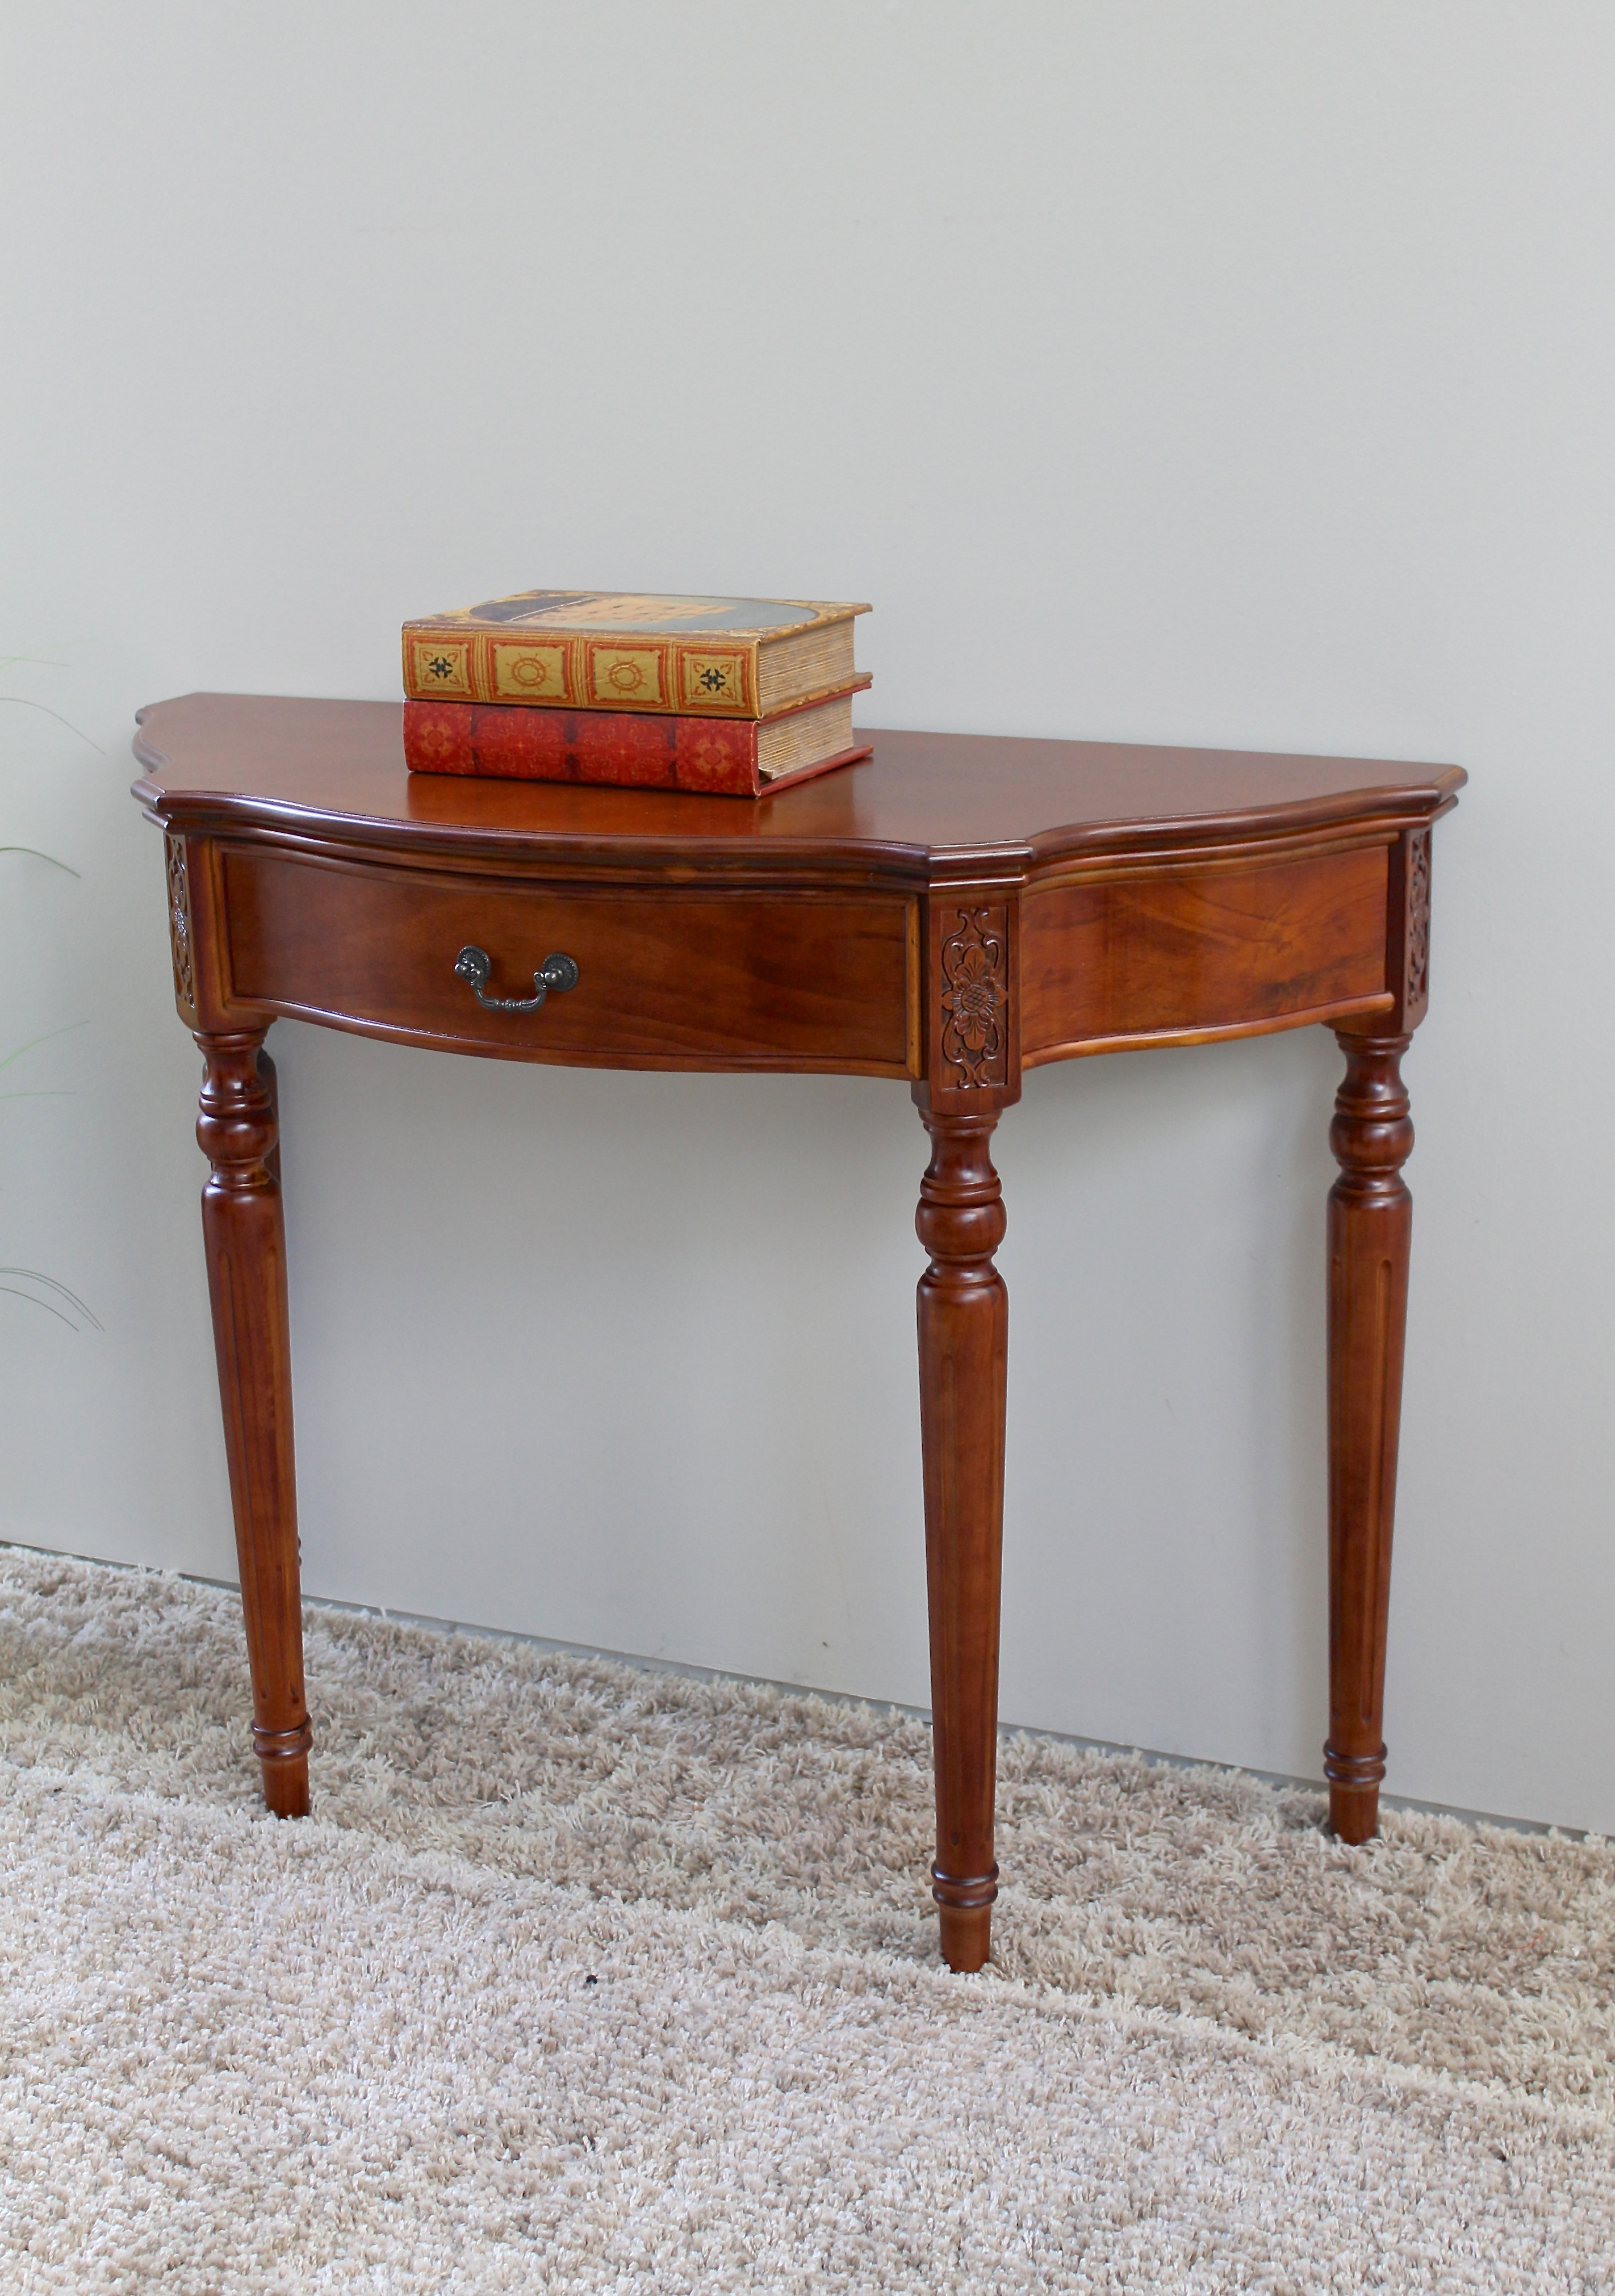 Carved Indian Furniture | Wayfair (View 7 of 20)